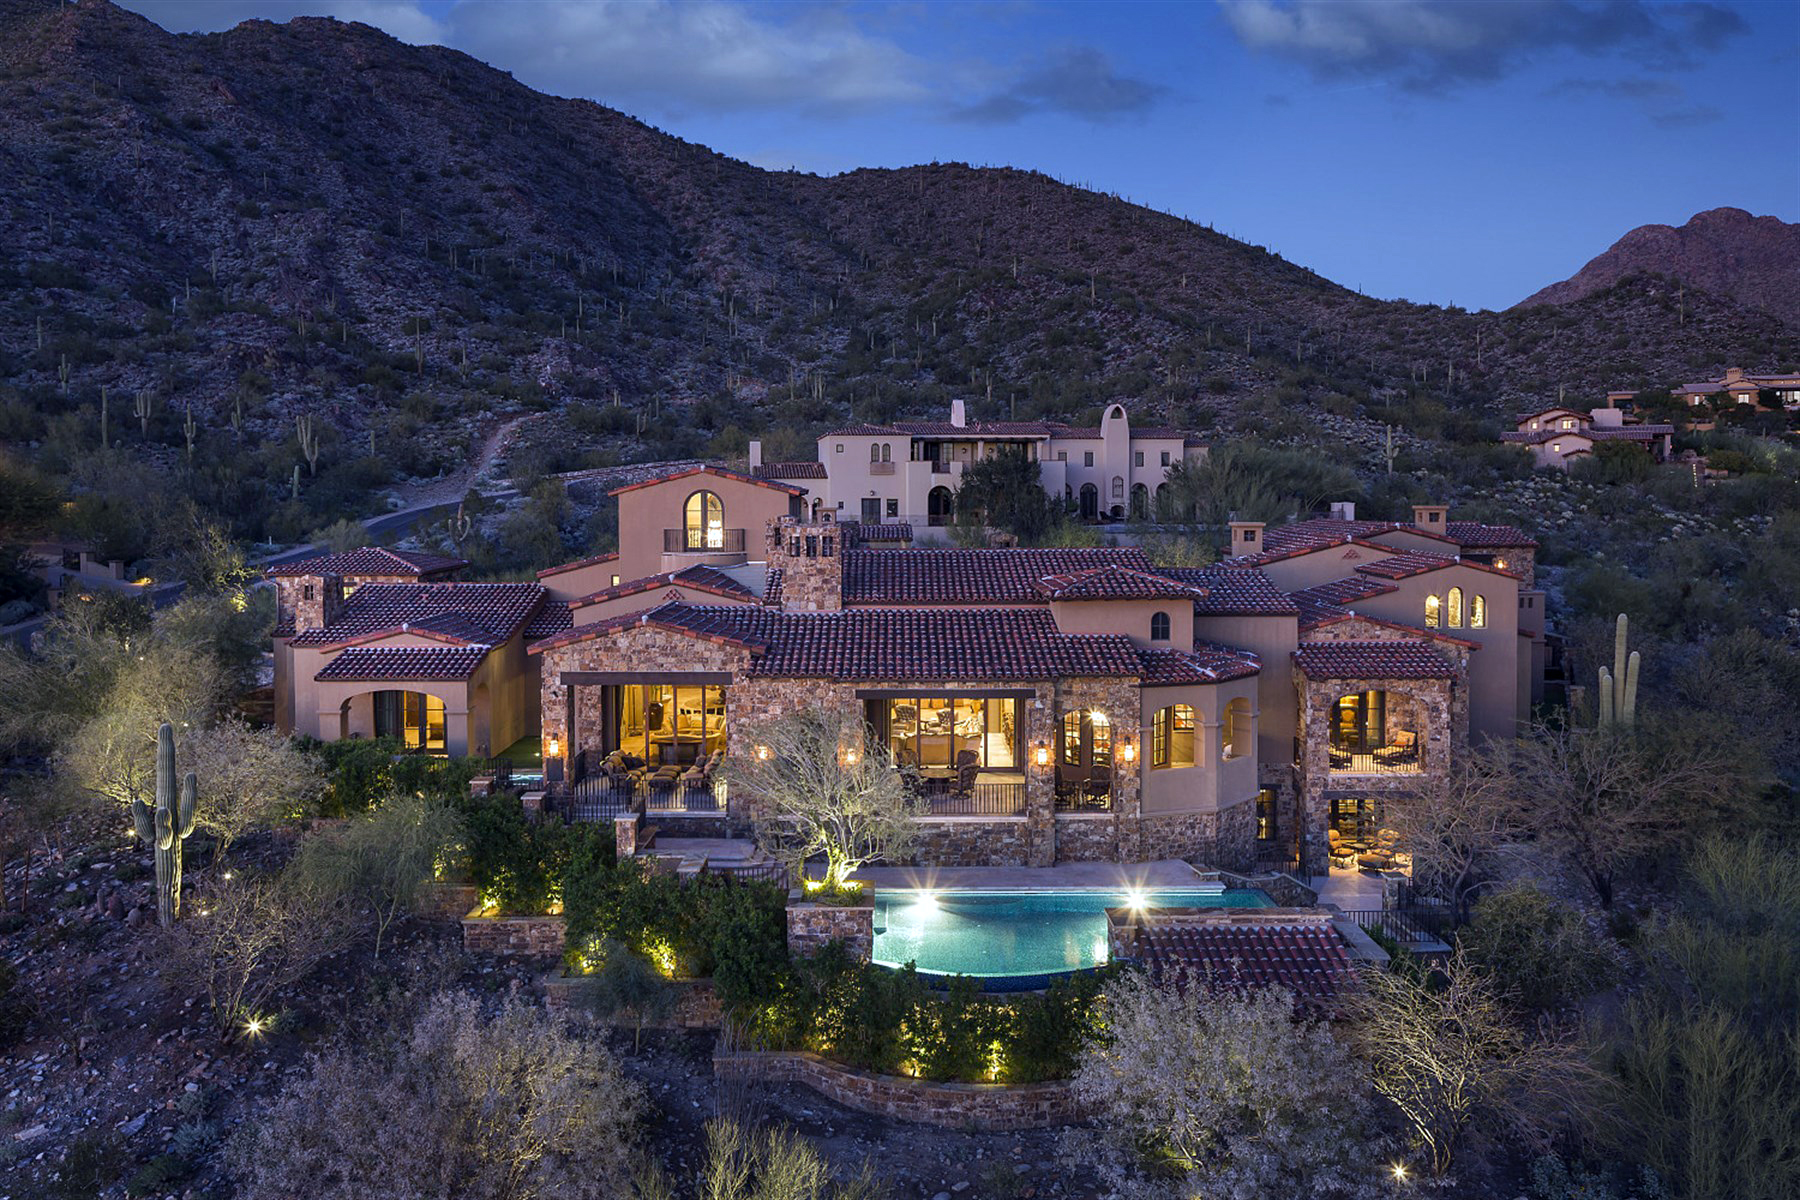 Nhà ở một gia đình vì Bán tại Exquisite European Manor in The Exclusive Upper Canyon at Silverleaf 20913 N 104th Street #1488 Scottsdale, Arizona, 85255 Hoa Kỳ